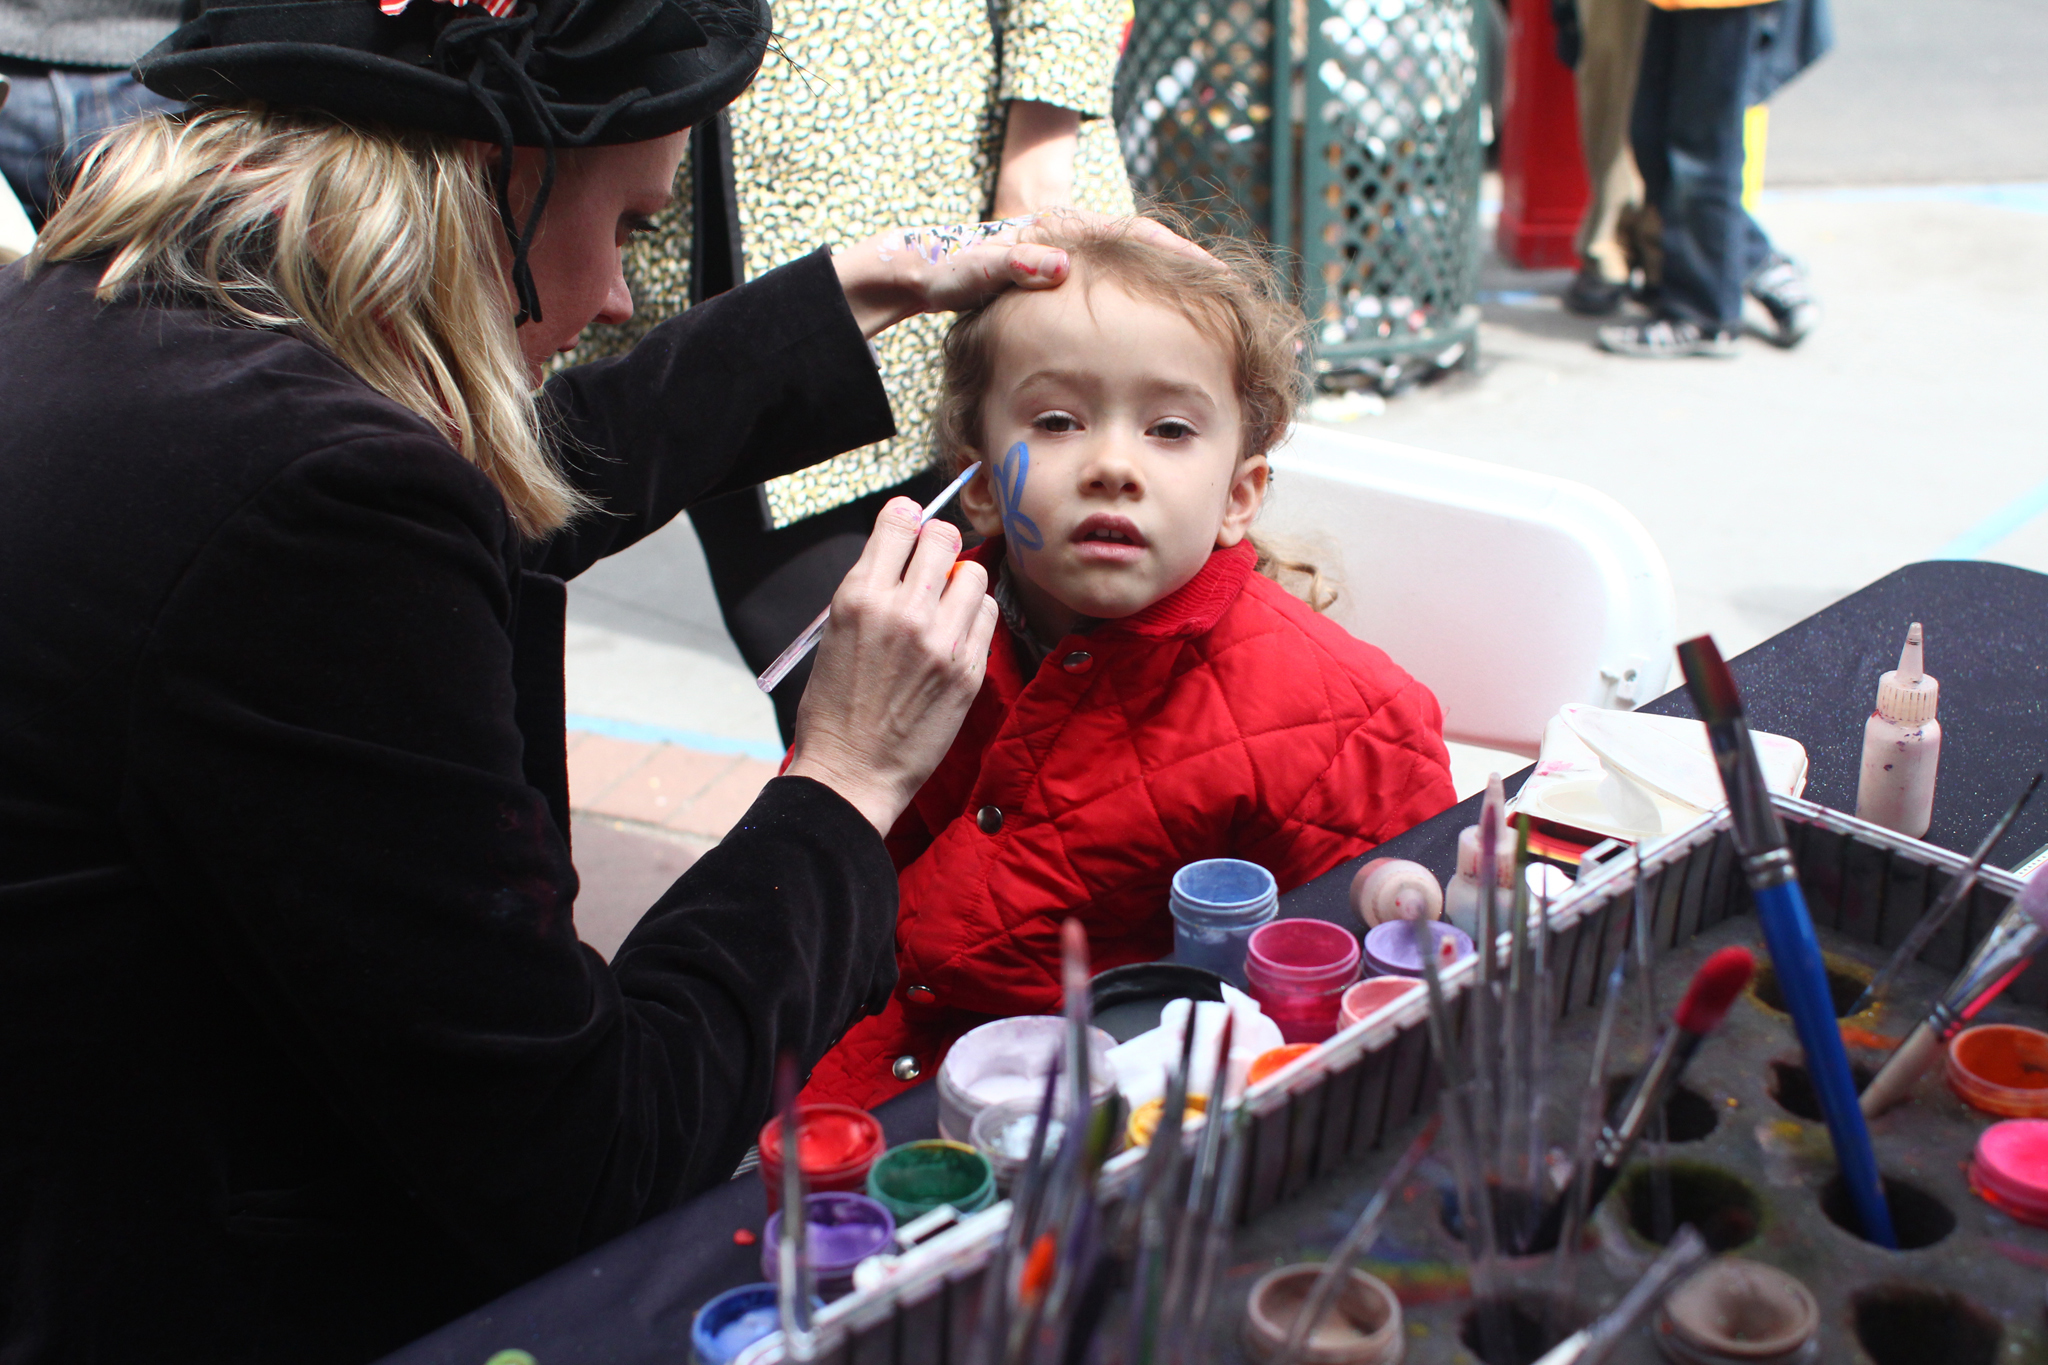 Spend the day at the Tribeca Family Festival Street Fair